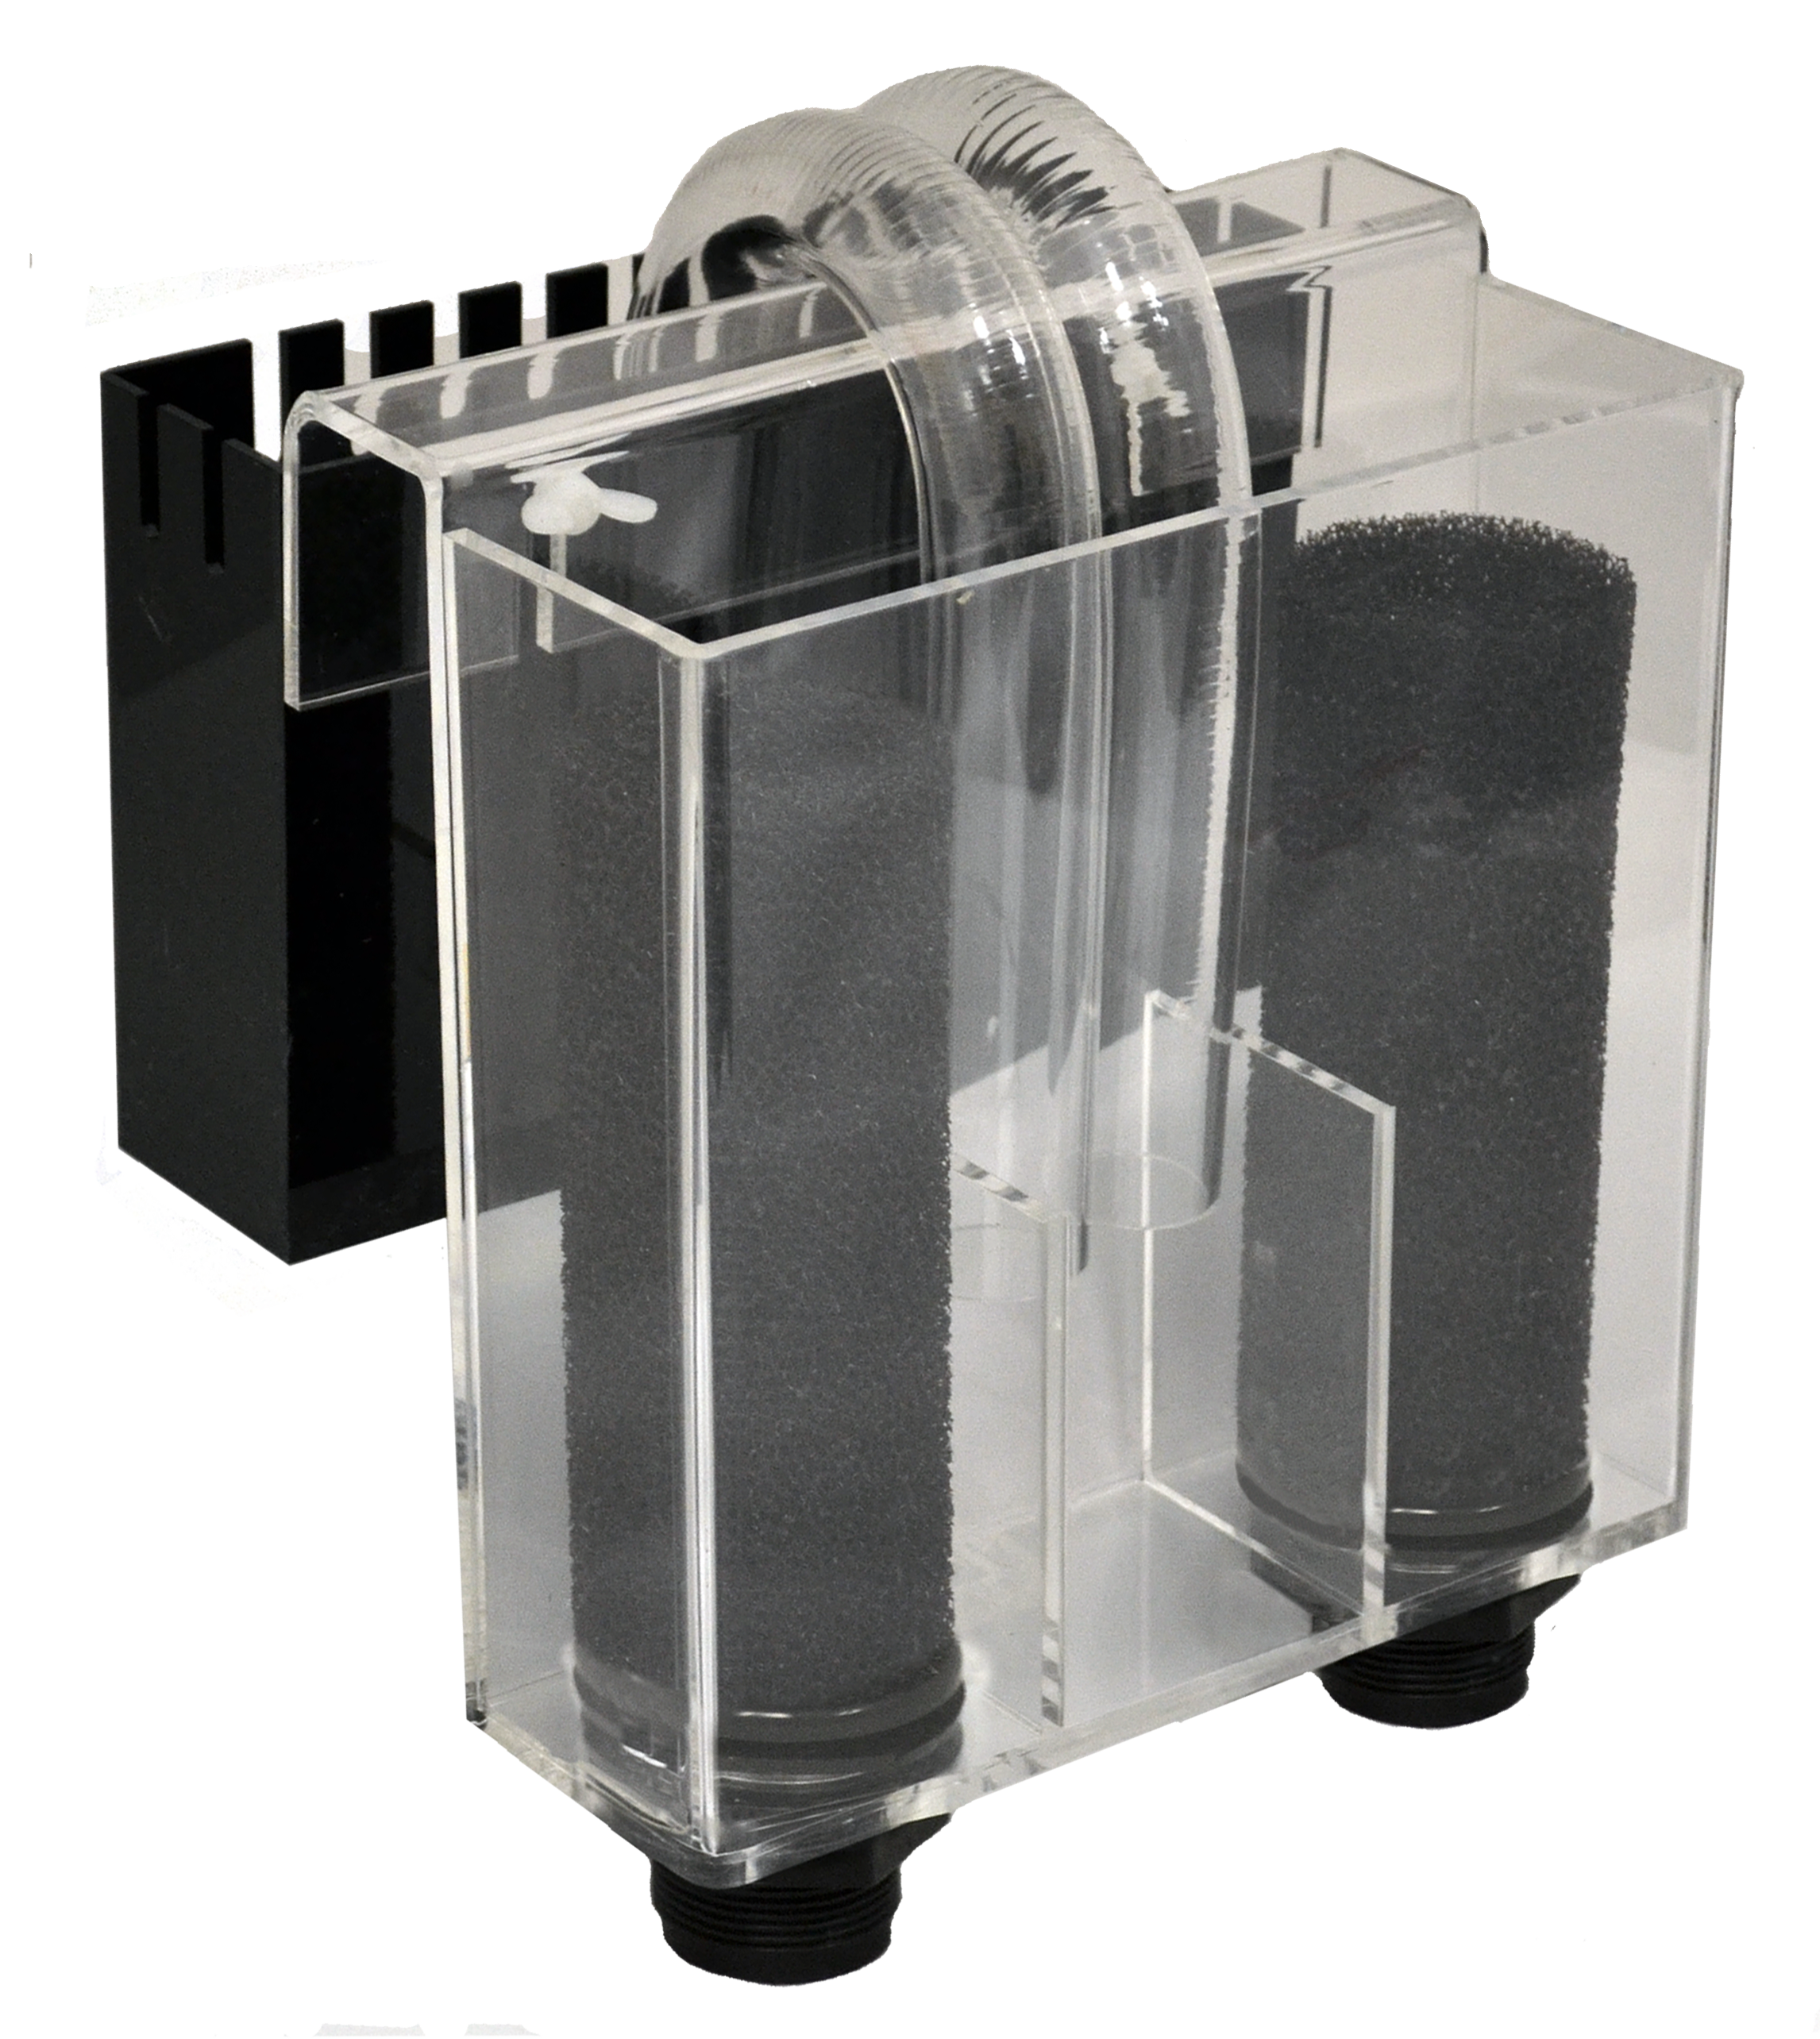 "1000 Overflow System     Optimal Tank Size: 125-150 gallons    SKU: AM87010    UPC#: 7-49729-87010-4    Product Size: 9x3x10""    Package Size: 10.25x8x10.25""    Package Weight: 5.1lbs.    Master Carton Size: 24x20.75x11""    Master Carton Weight: 30.8lbs.    Case Pack: 6pcs"